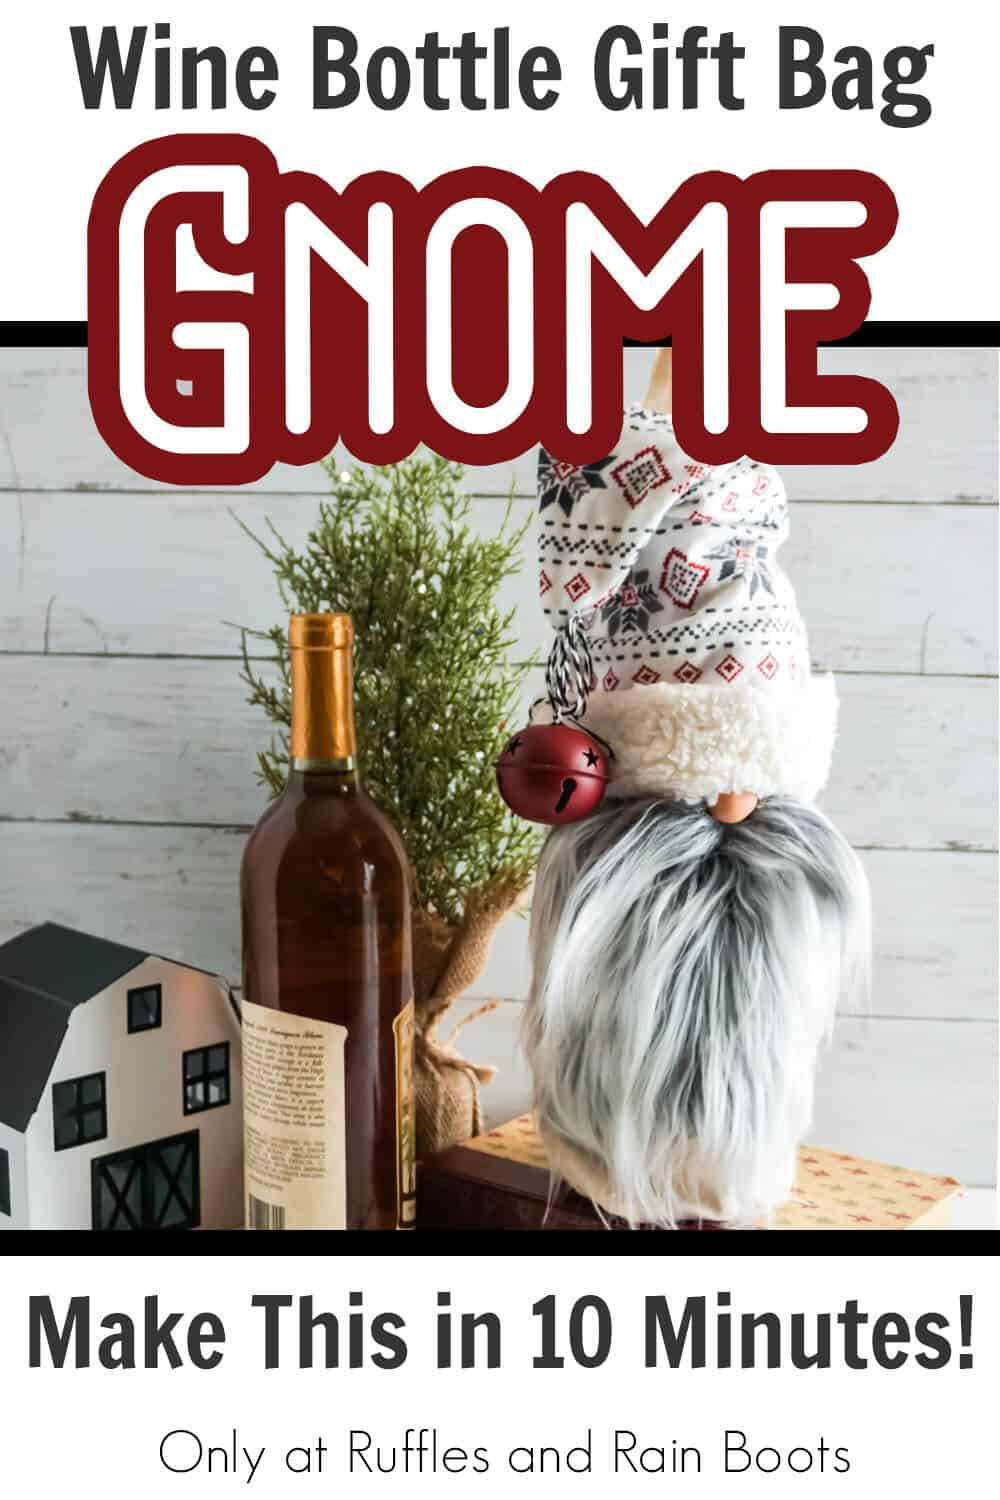 scandinvian gnome wine bottle bag gnome craft with text which reads wine bottle gift bag gnome make this in 10 minutes!